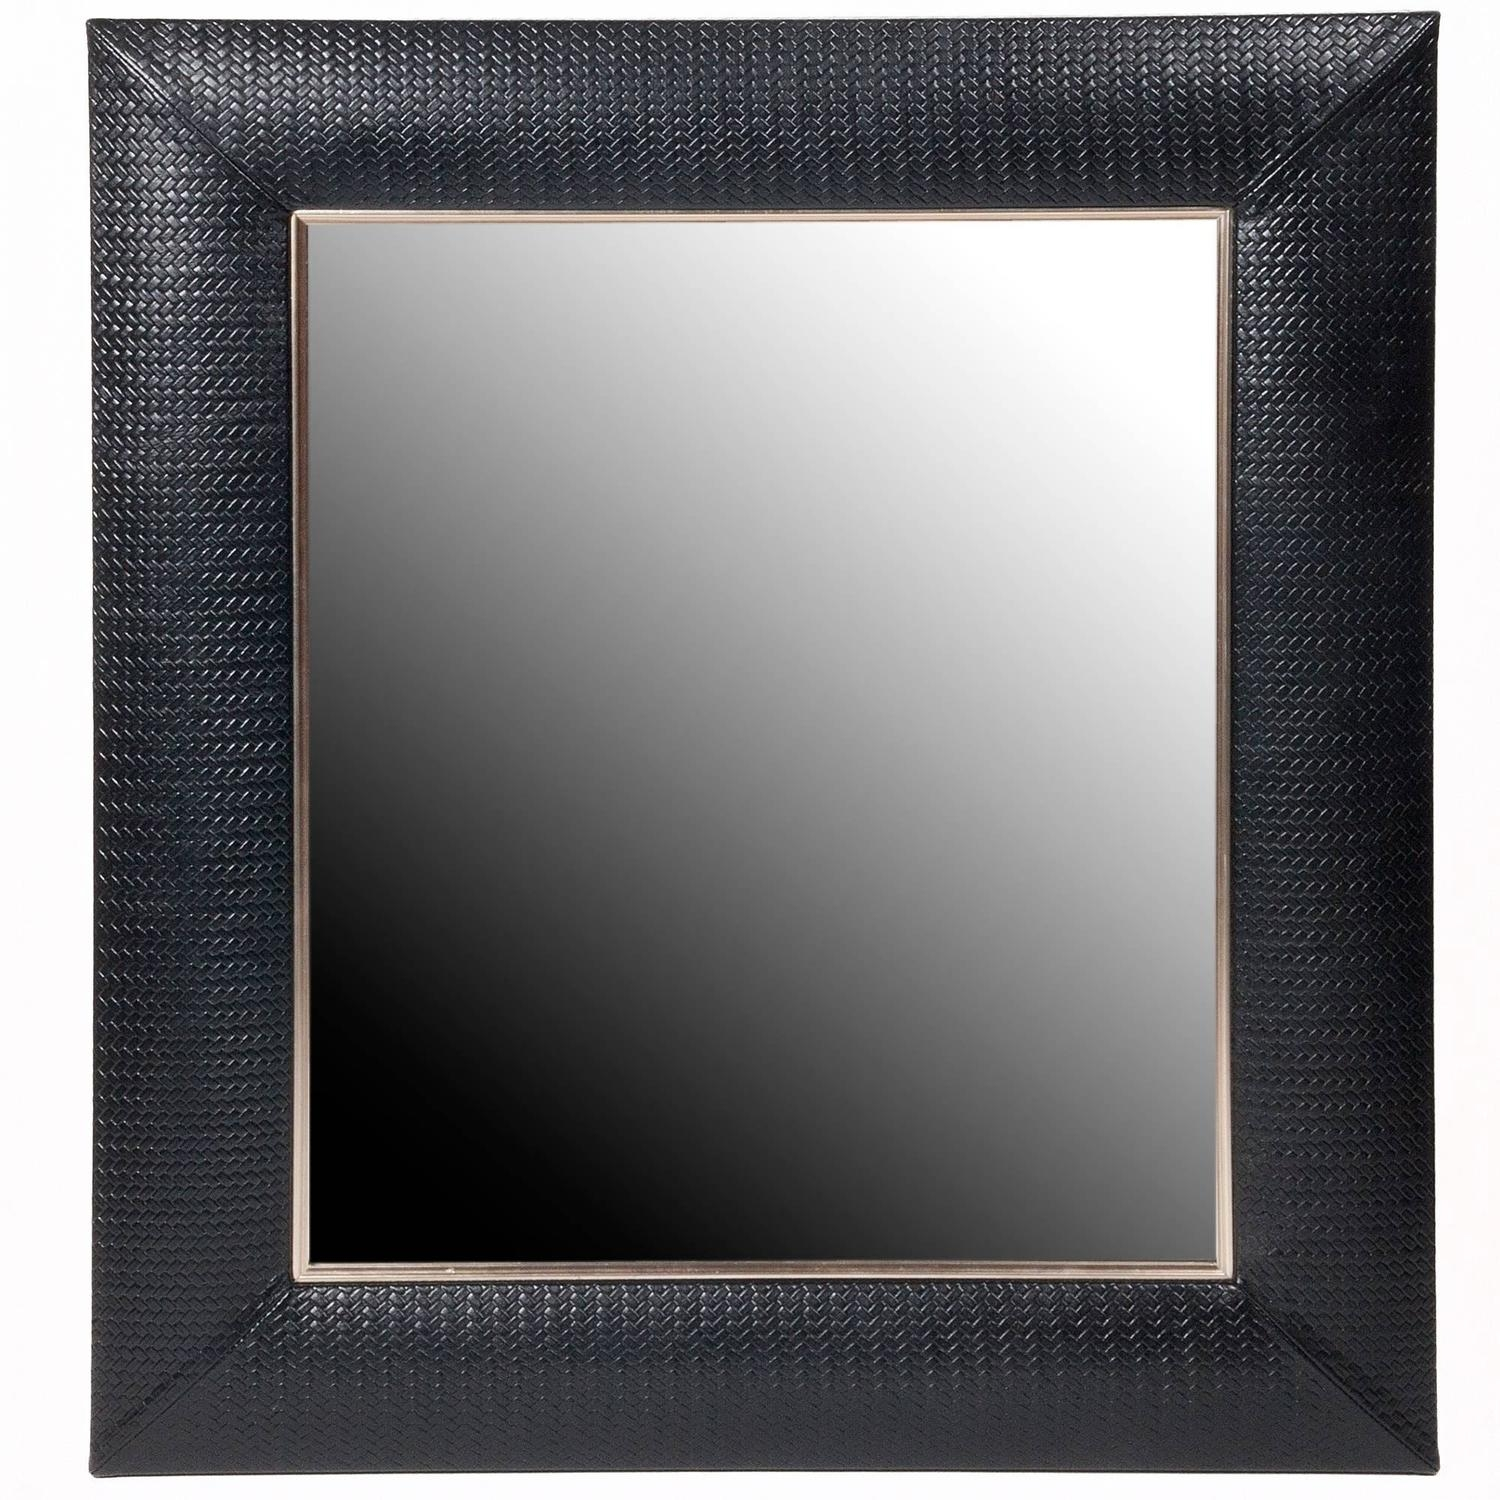 Leather Wall Mirrors 94 For Sale At 1stdibs Regarding Black Leather Framed Mirror (Image 7 of 15)